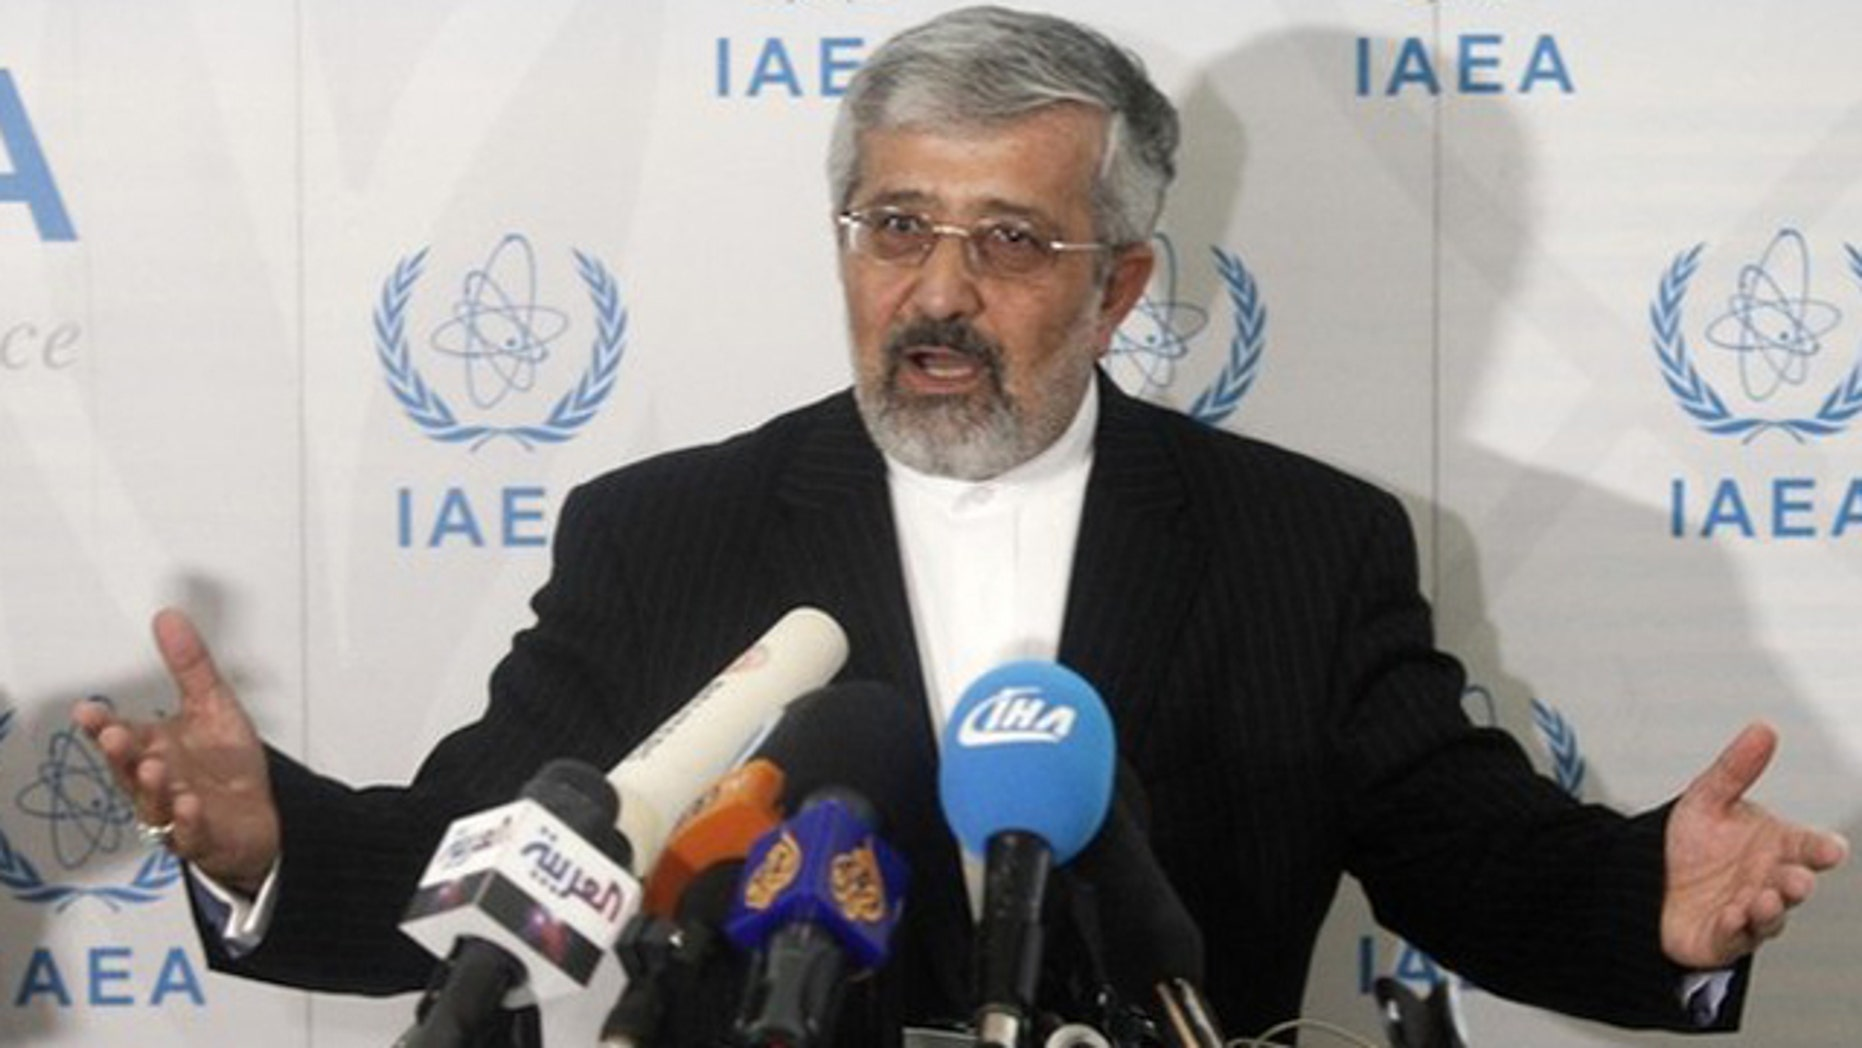 Iran's International Atomic Energy Agency (IAEA) ambassador Ali Asghar Soltanieh briefs the media during a board of governors meeting at the UN headquarters in Vienna September 15, 2010. Western powers accused Iran on Wednesday of trying to intimidate the U.N. atomic agency by barring some nuclear inspectors and the United States warned the Islamic state of possible diplomatic consequences.  REUTERS/Herwig Prammer (AUSTRIA - Tags: POLITICS)